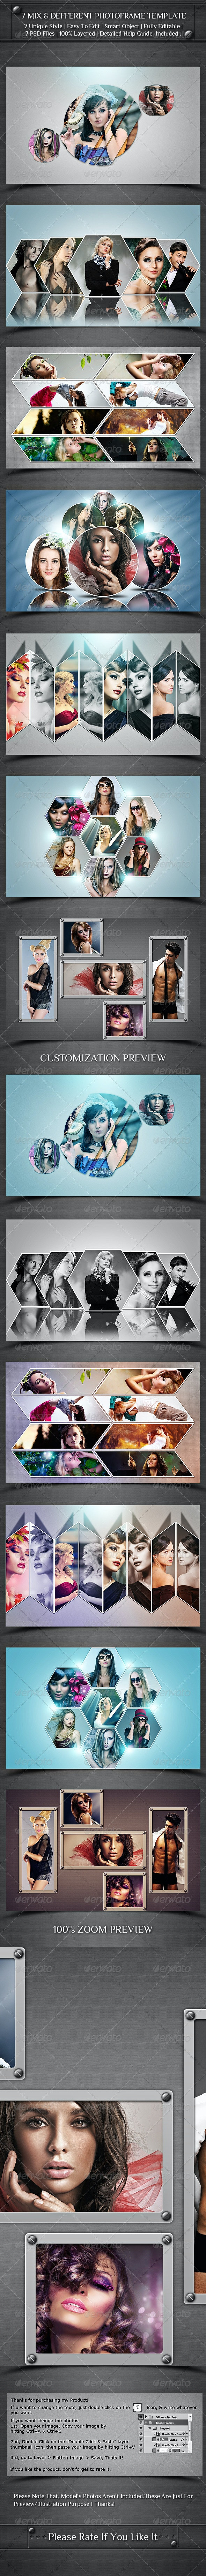 7 Mix And Different Photo Frame Template  - Photo Templates Graphics